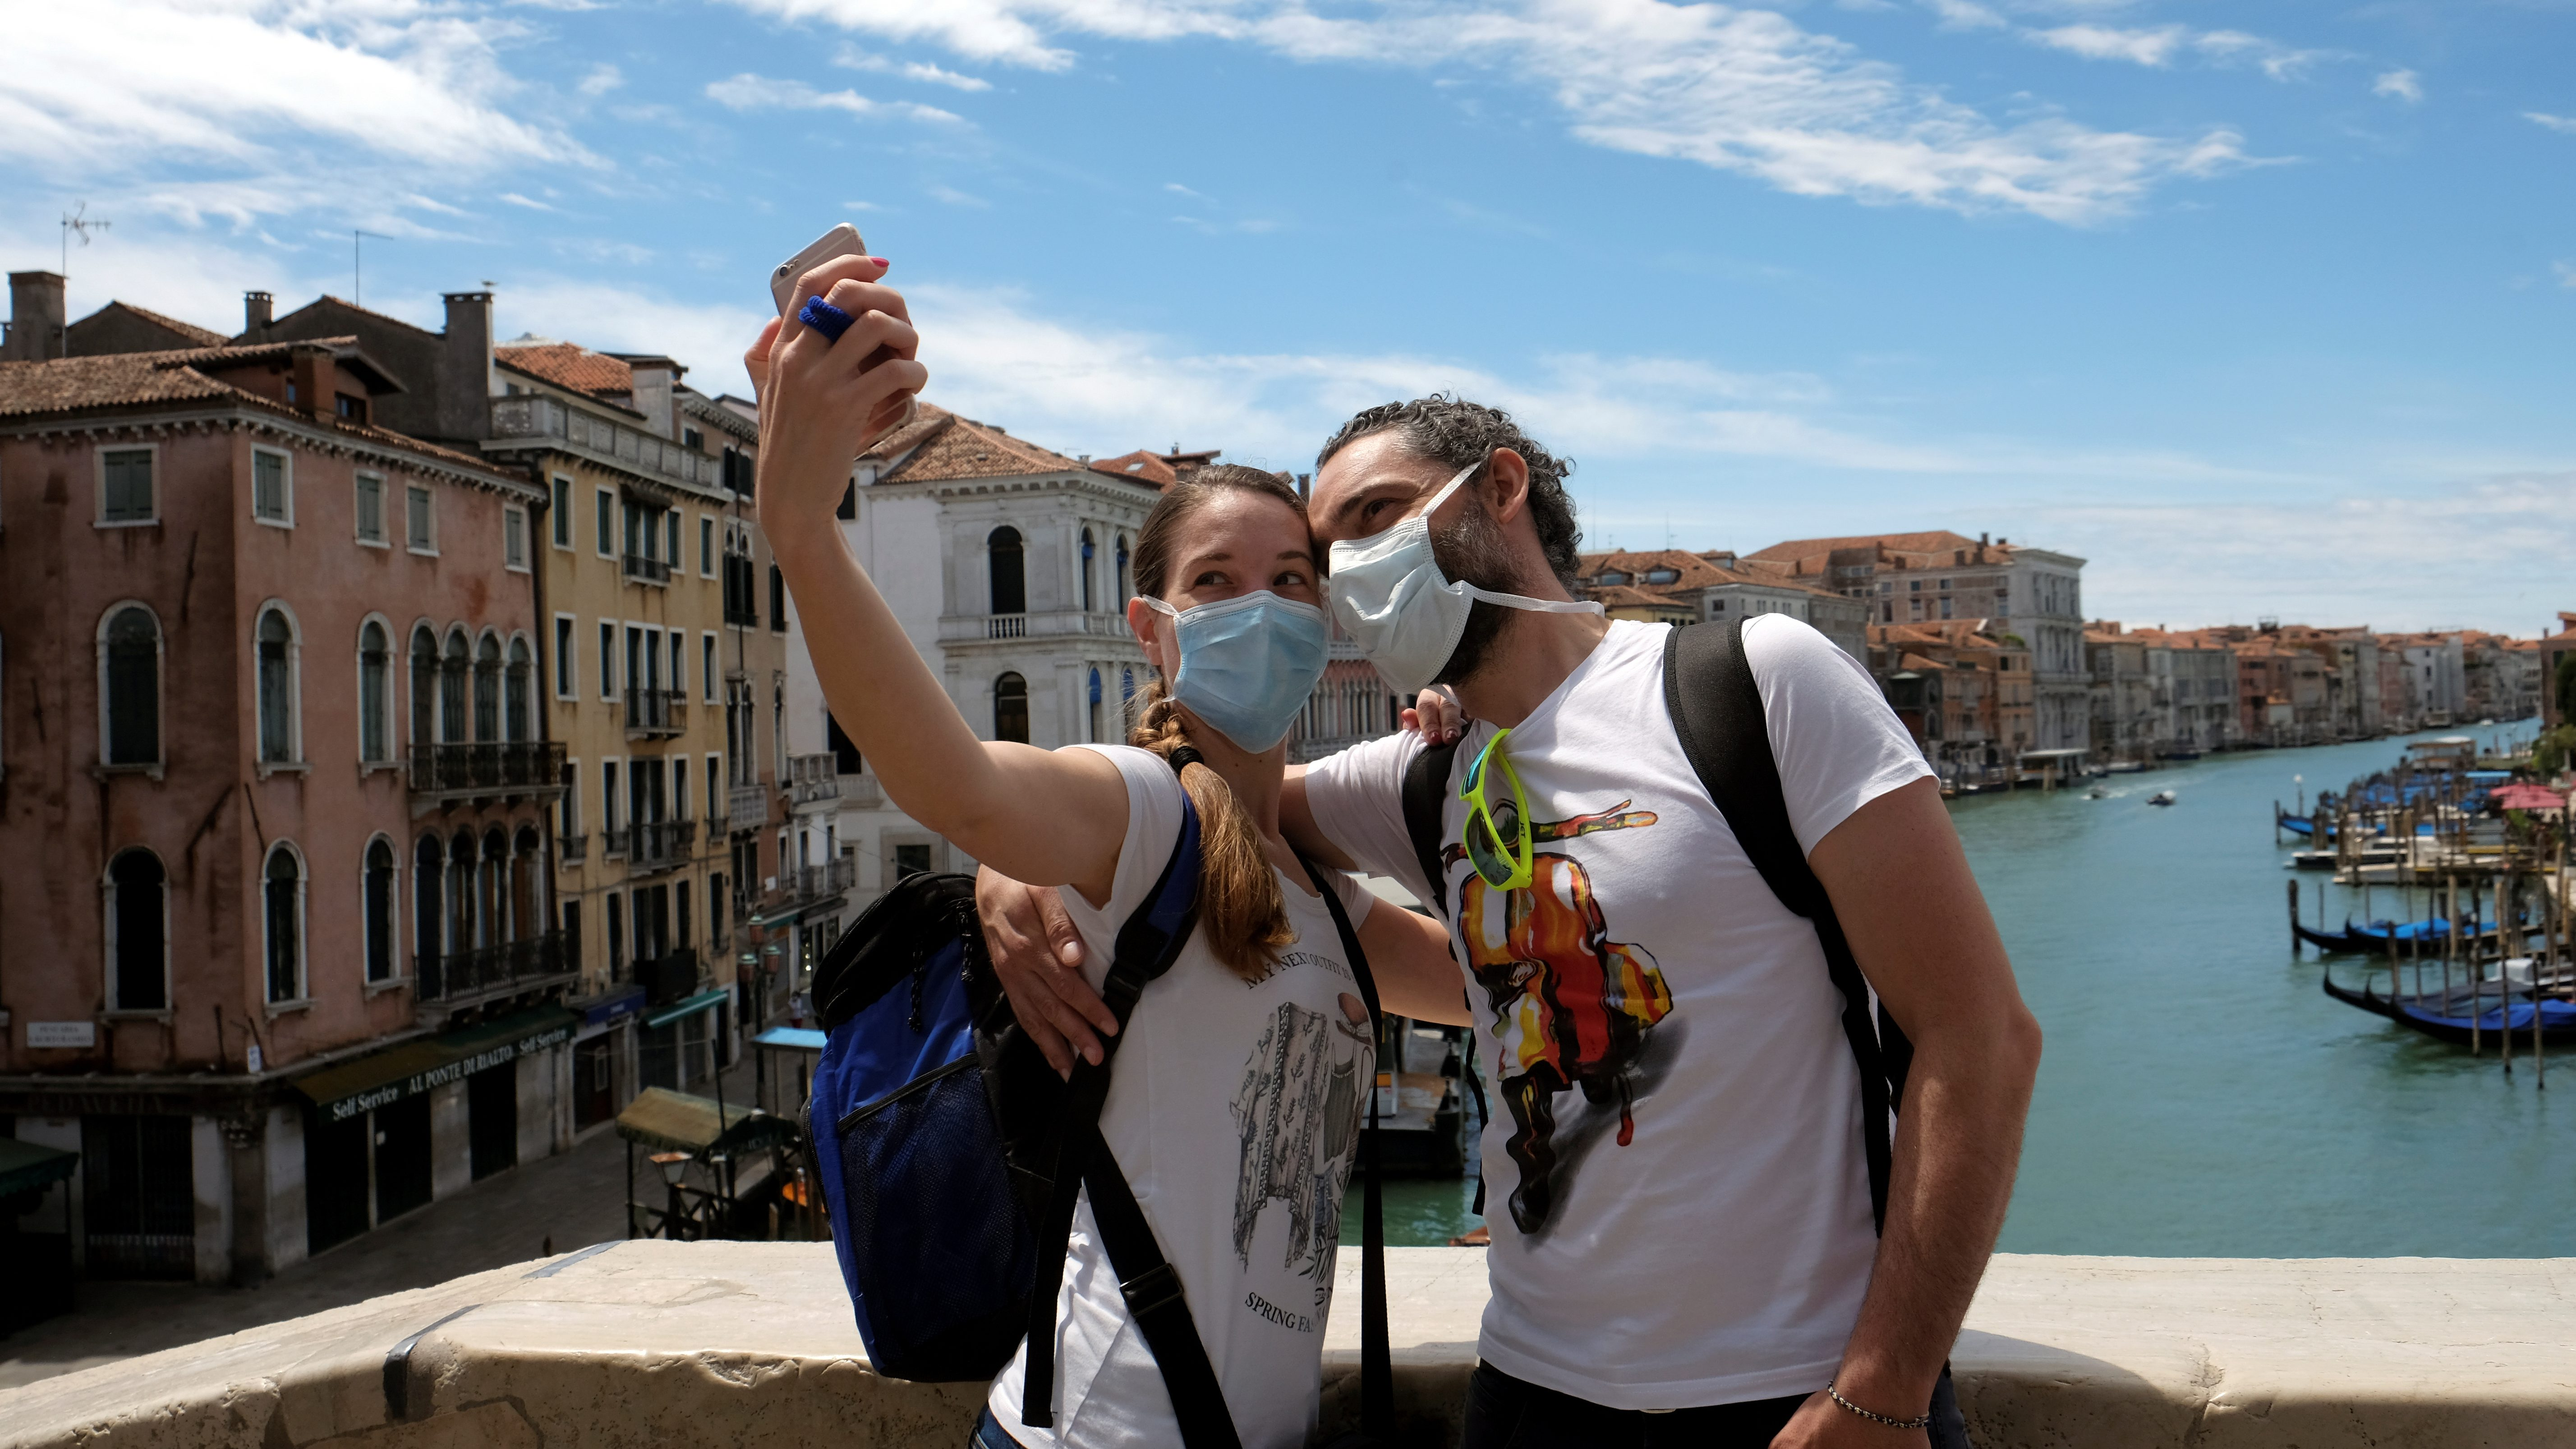 Tourists wearing protective masks take a selfie on the Rialto Bridge following the outbreak of the coronavirus disease (COVID-19) in Venice